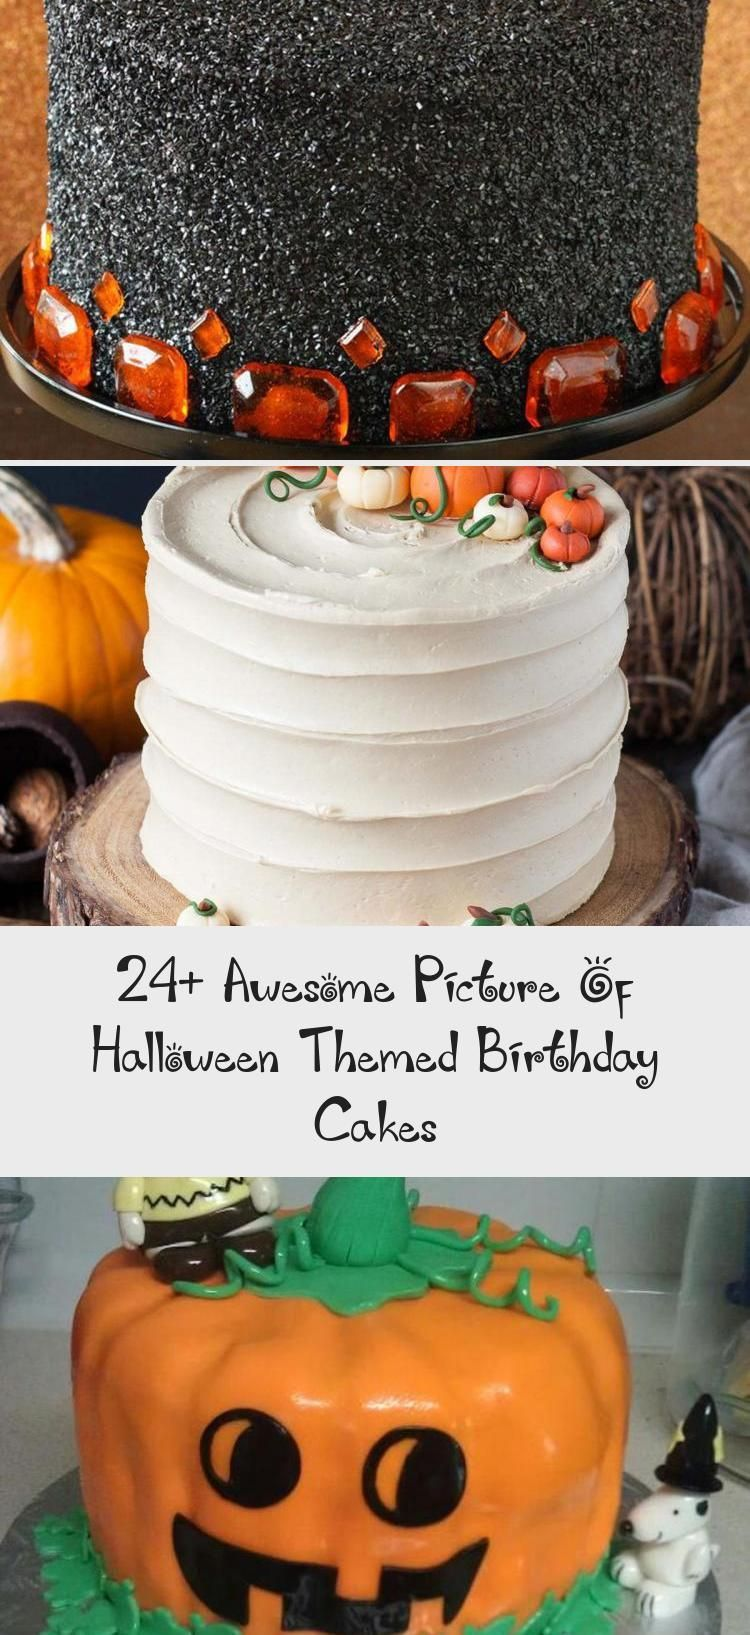 24+ Awesome Picture of Halloween Themed Birthday Cakes ...